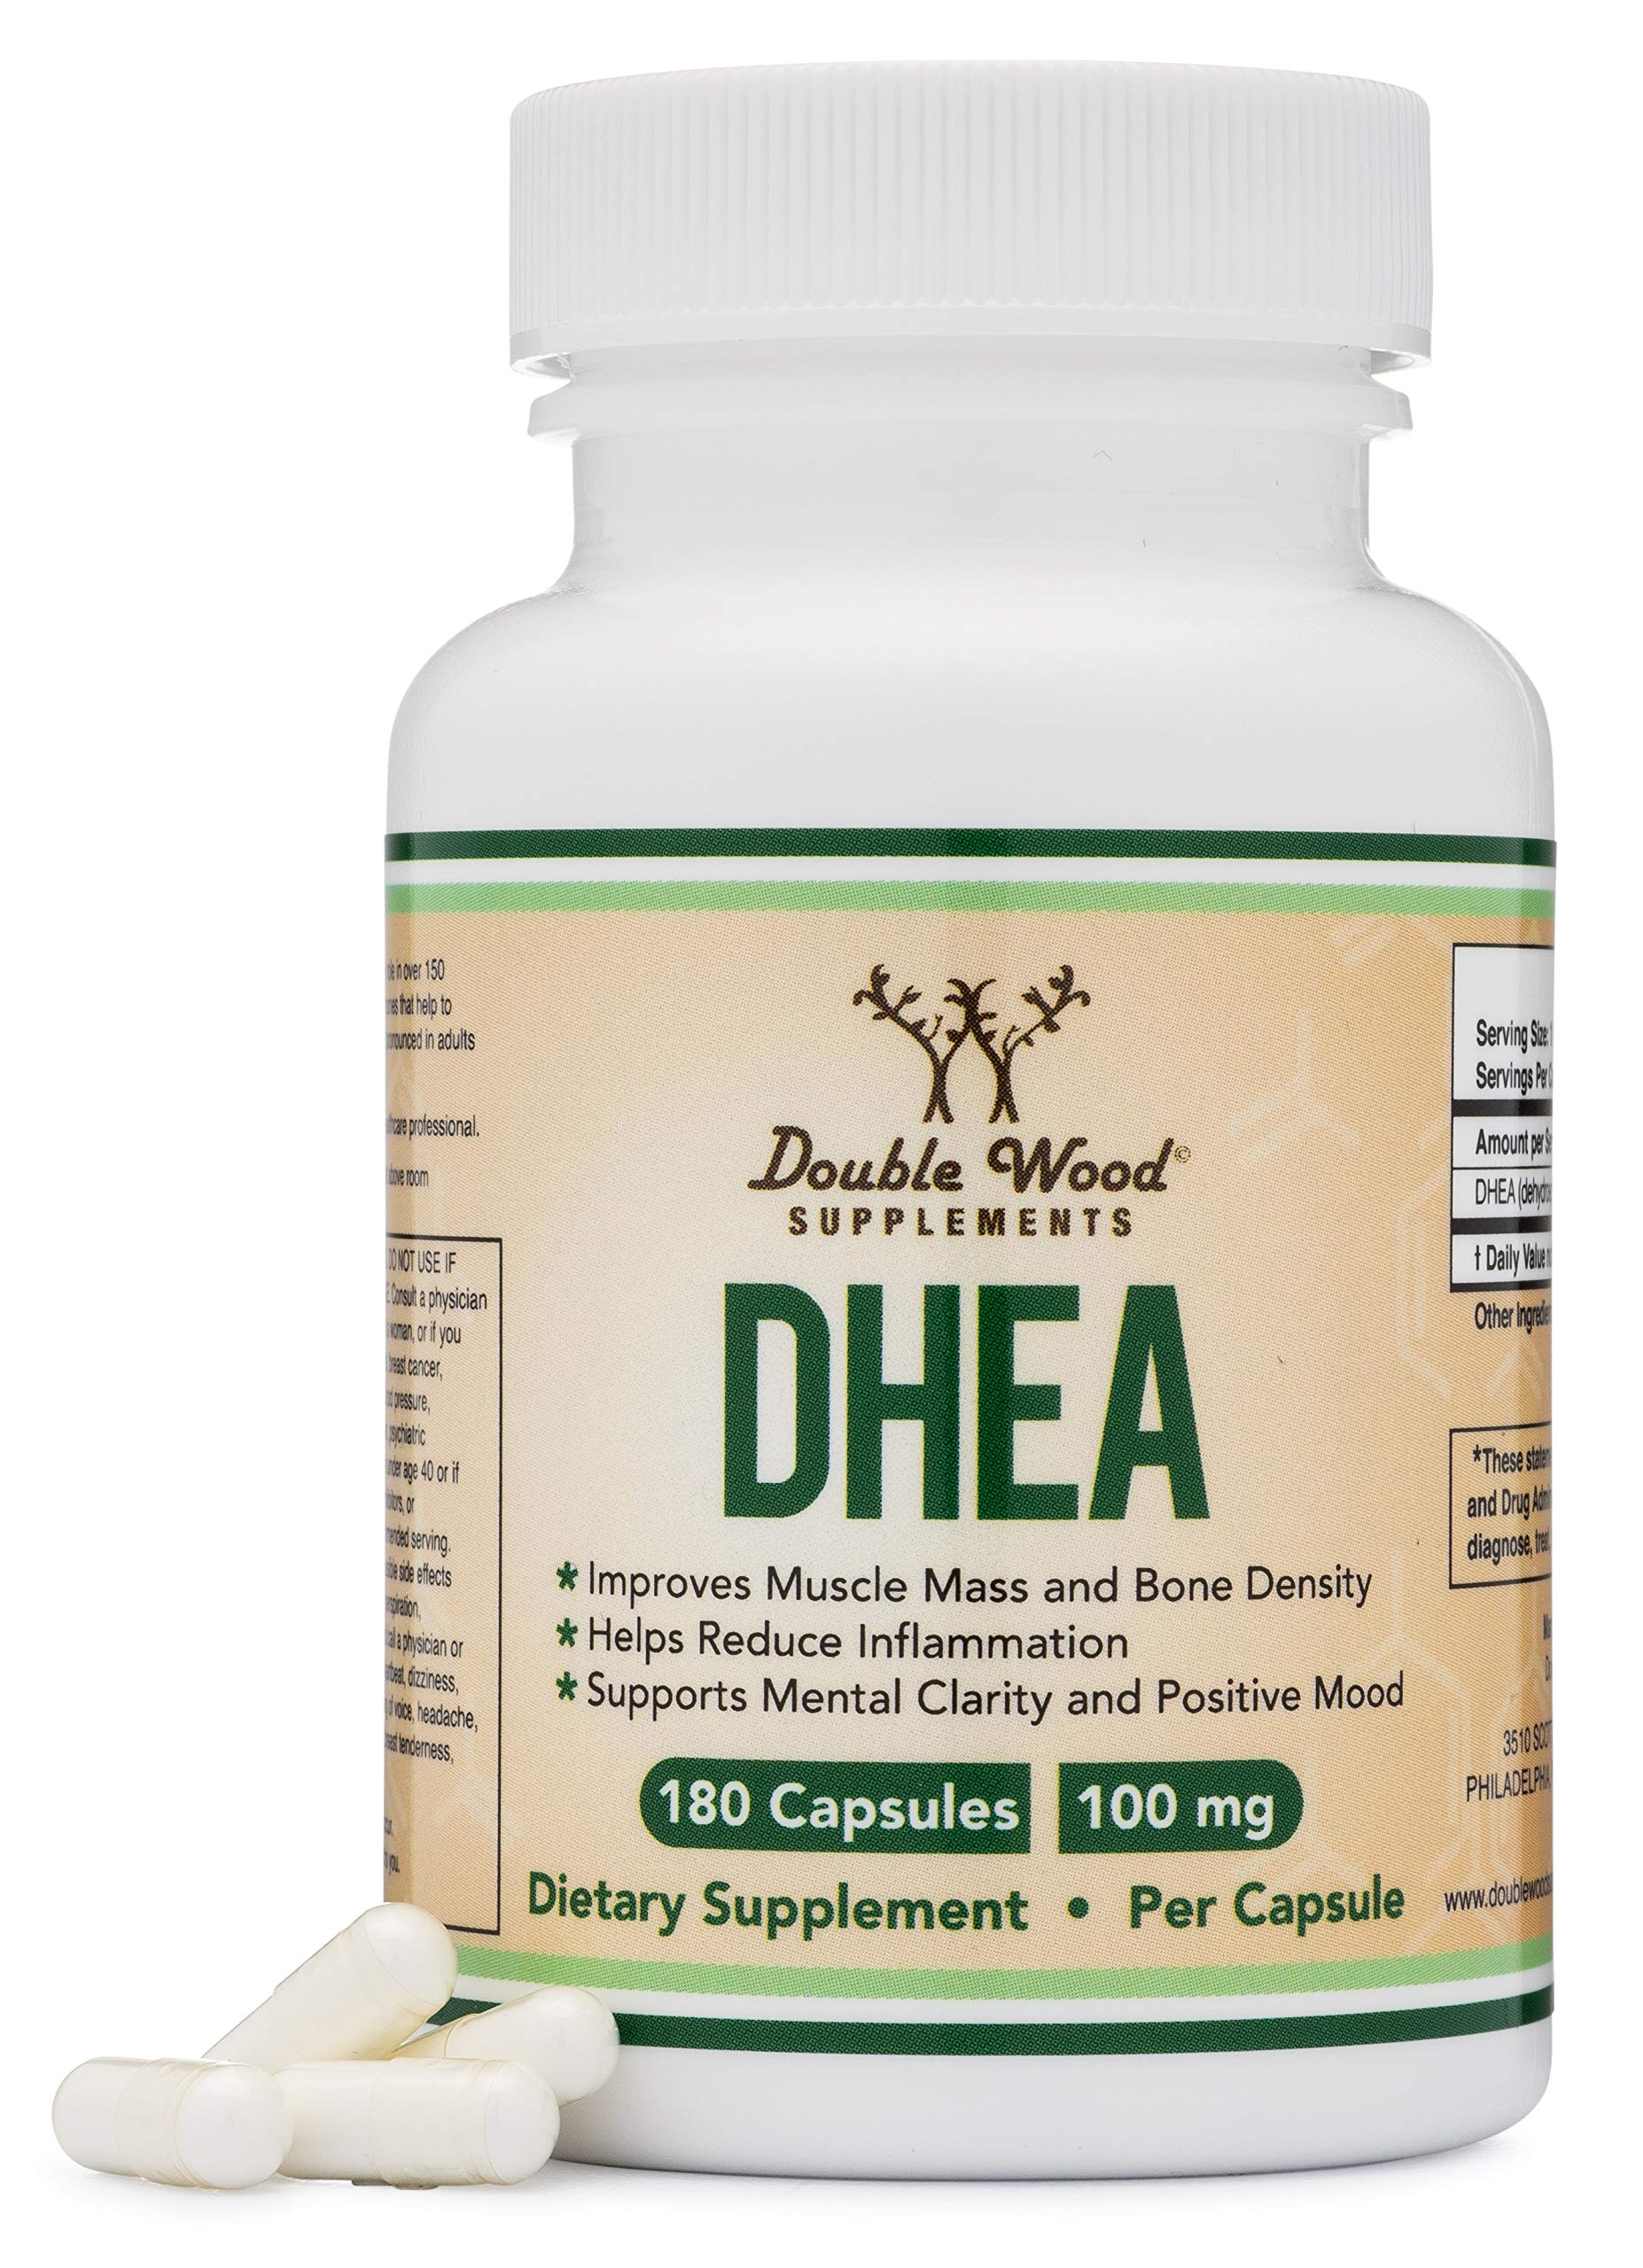 DHEA 100mg – 180 Capsules -Third Party Tested, Made in The USA (Max Strength, 6 Month Supply) Hormone Balance for Women and Men, Supports Healthy Libido by Double Wood Supplements